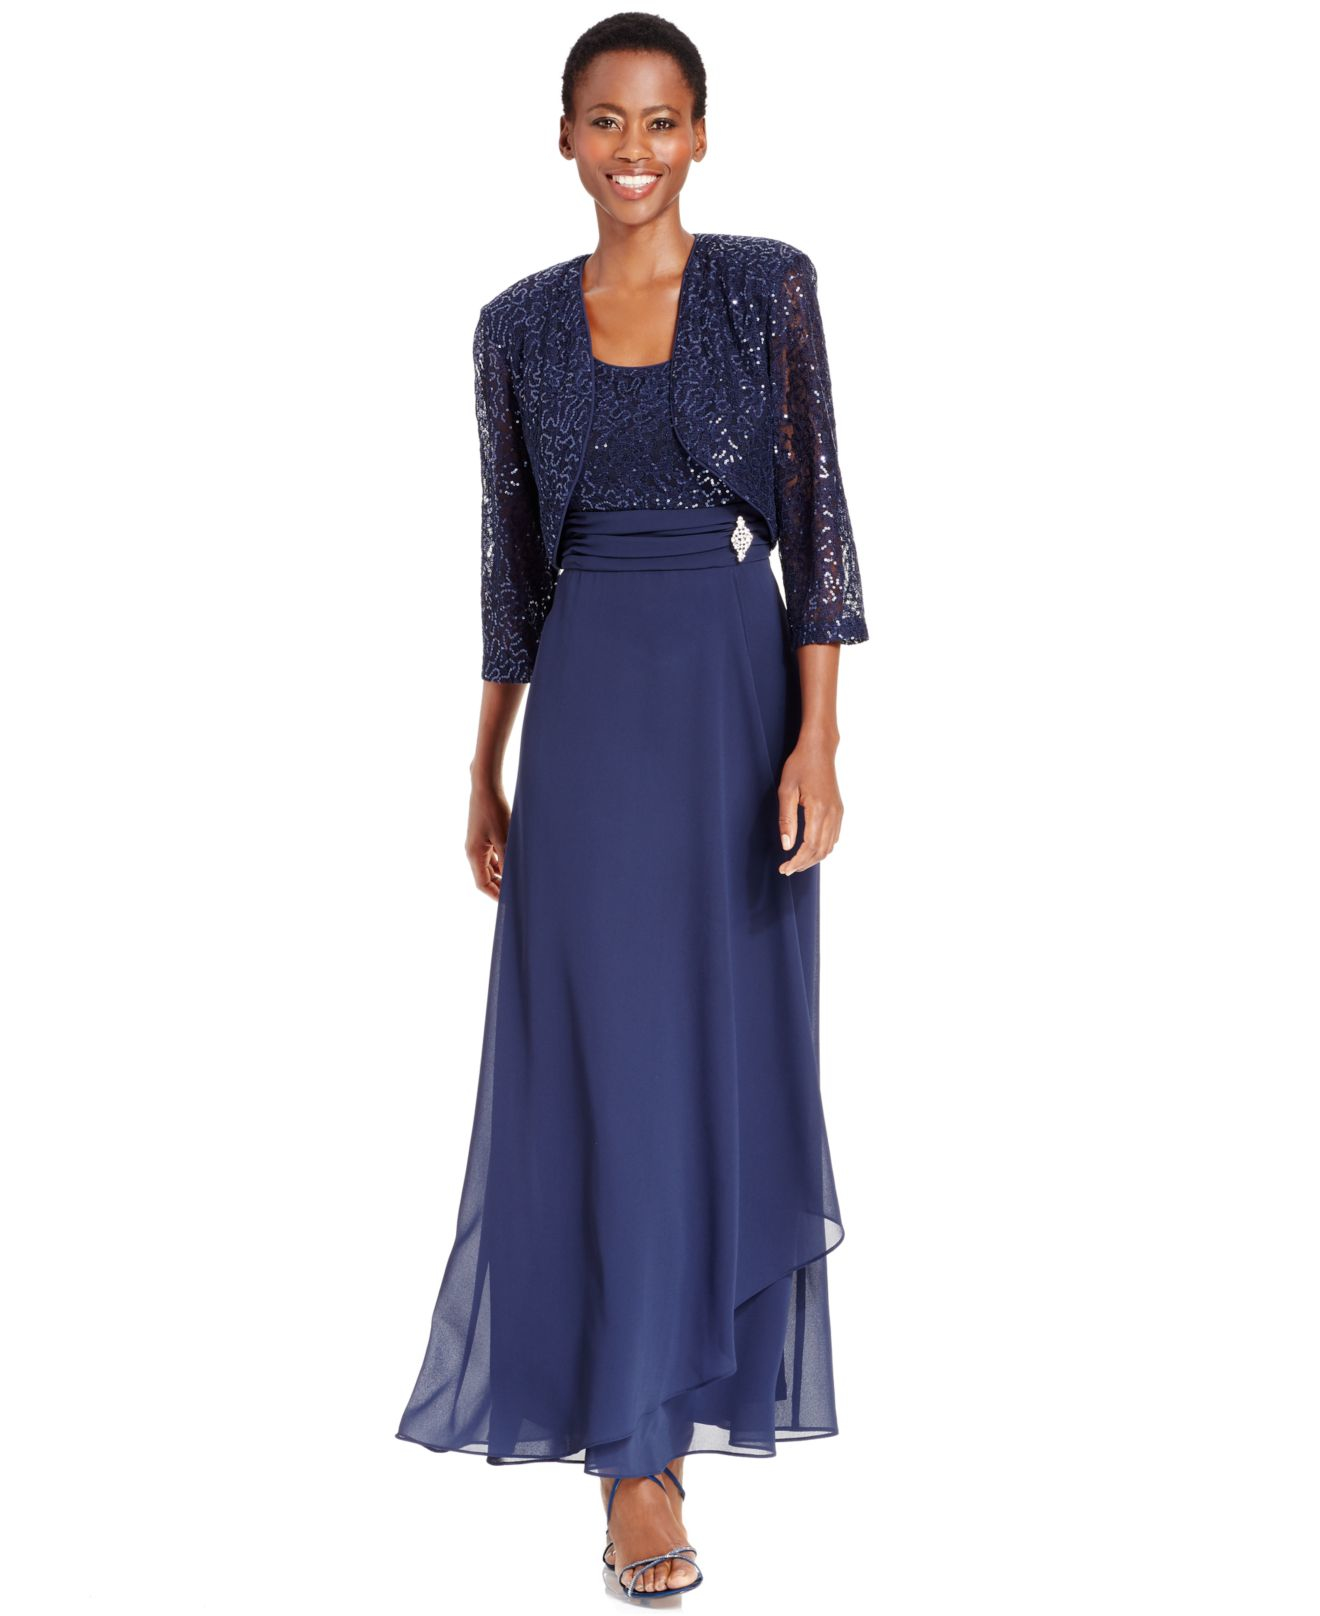 R m richards maxi dress outfits